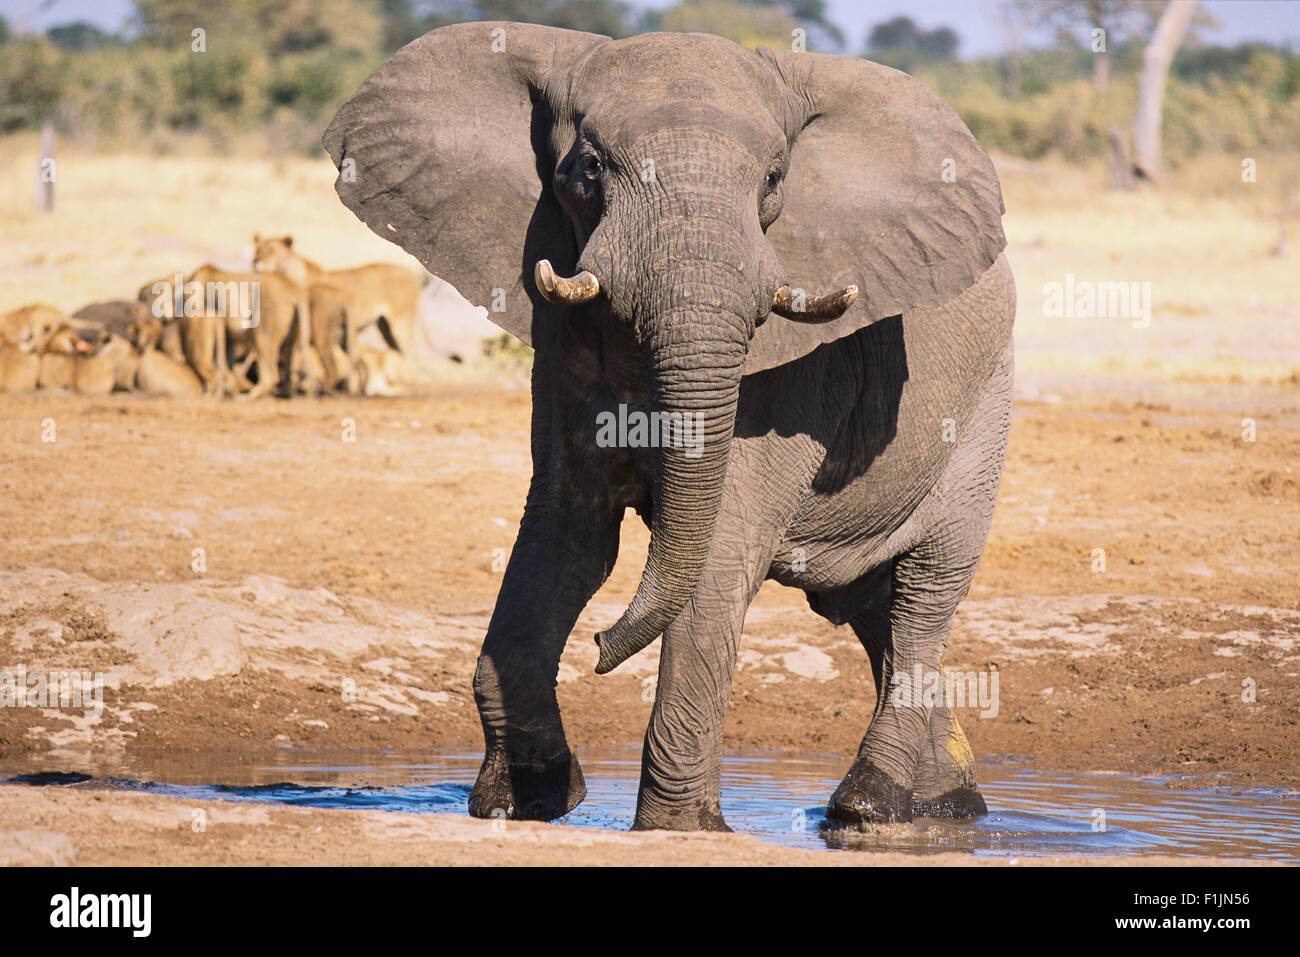 Elephant at Watering Hole Stock Photo